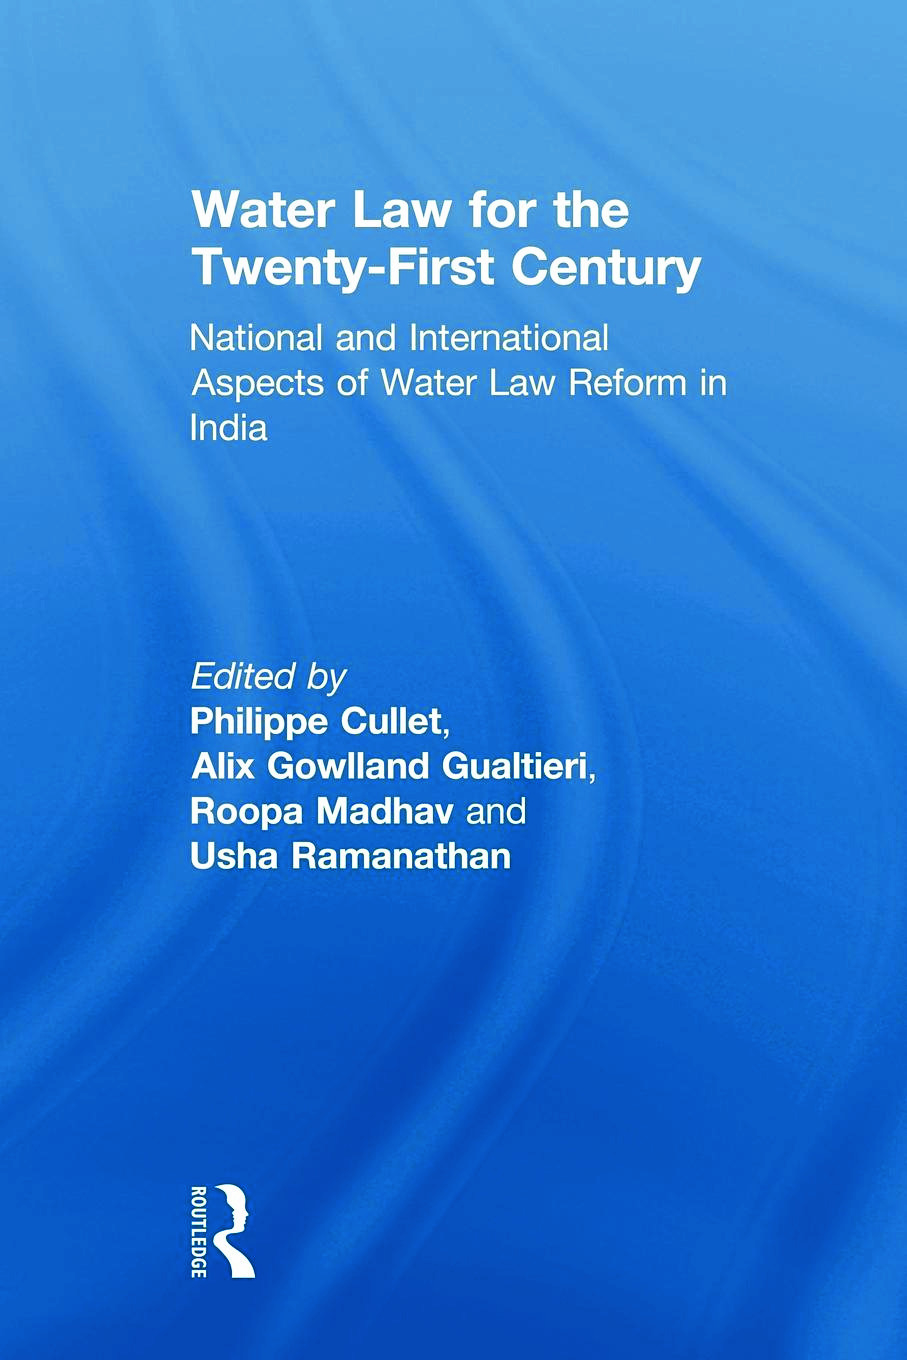 Water Law for the Twenty-First Century: National and International Aspects of Water Law Reform in India book cover